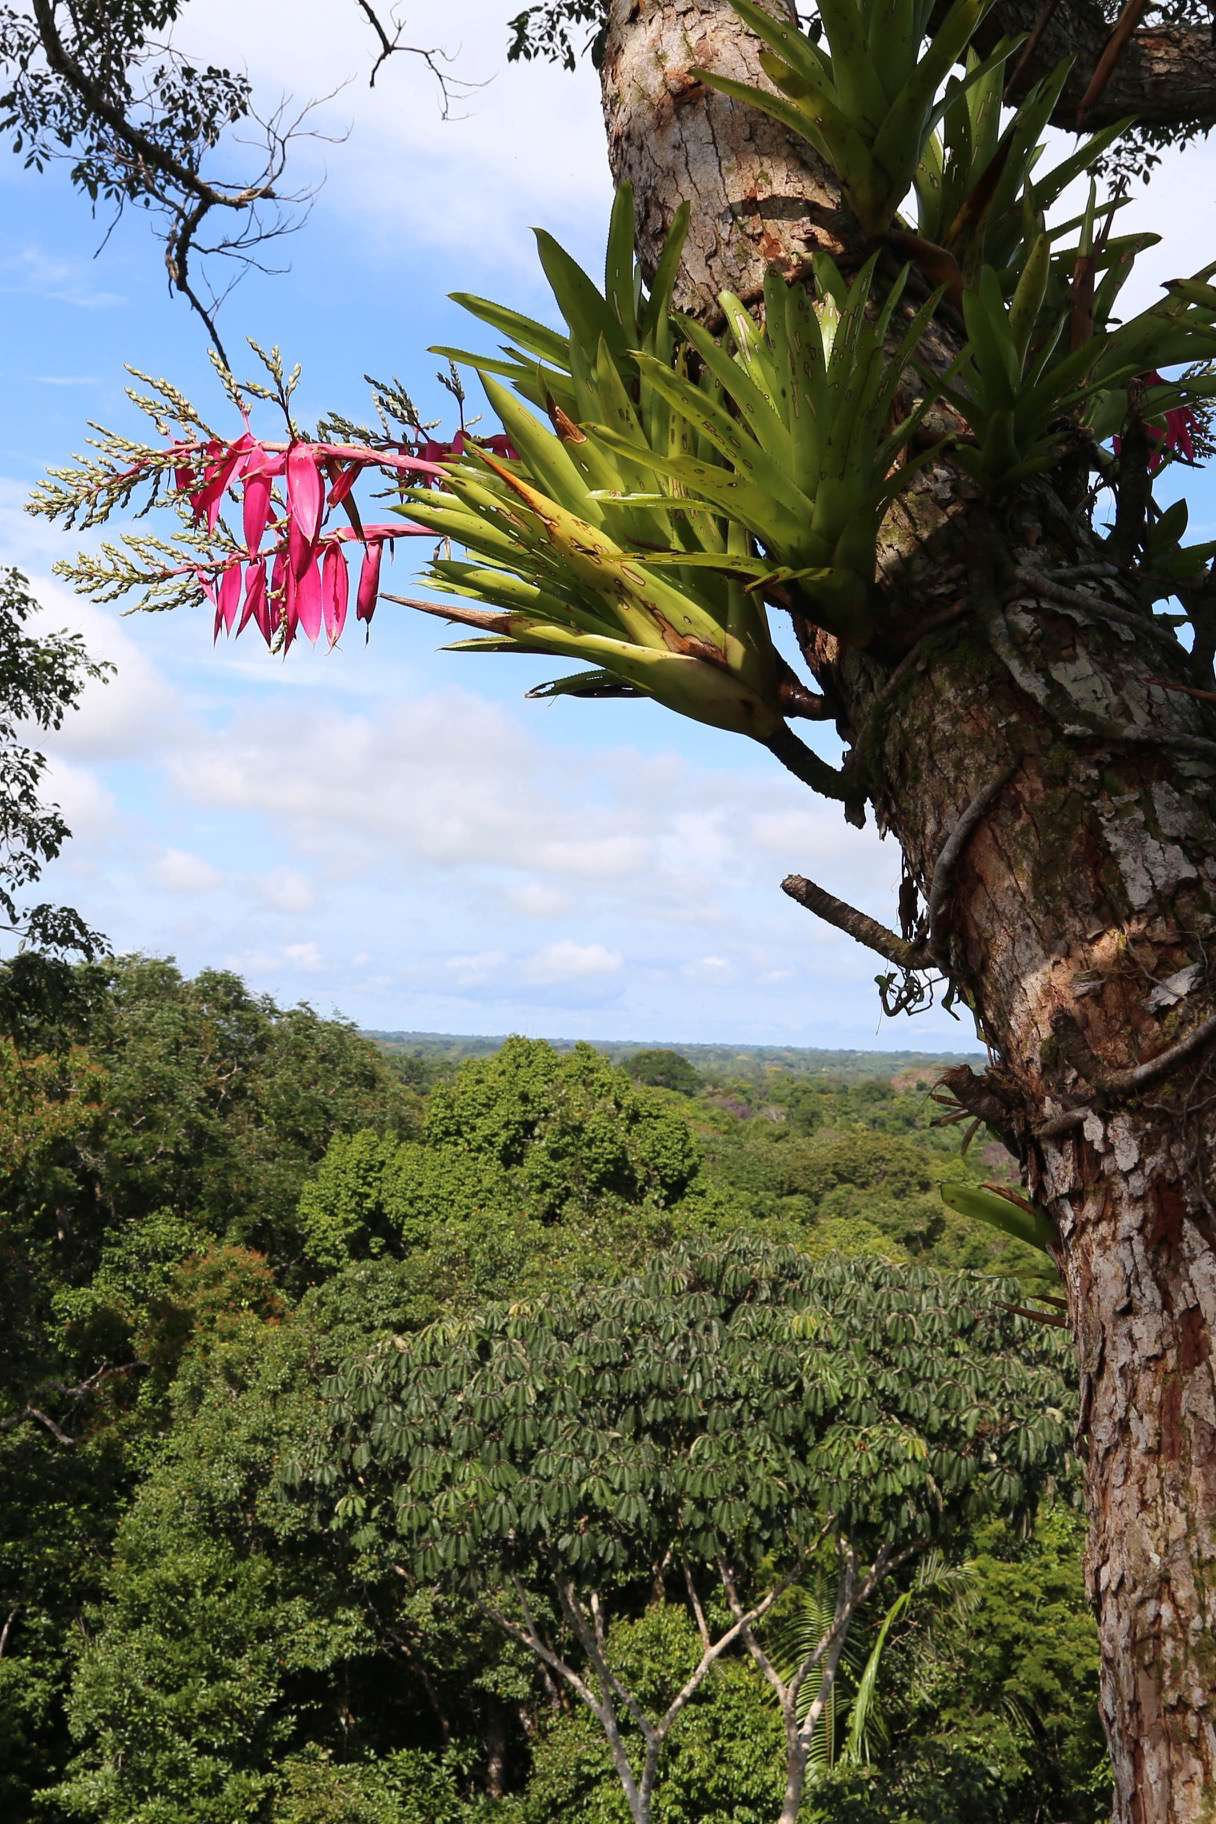 The beauty of the Amazon jungle as seen from treetop level.